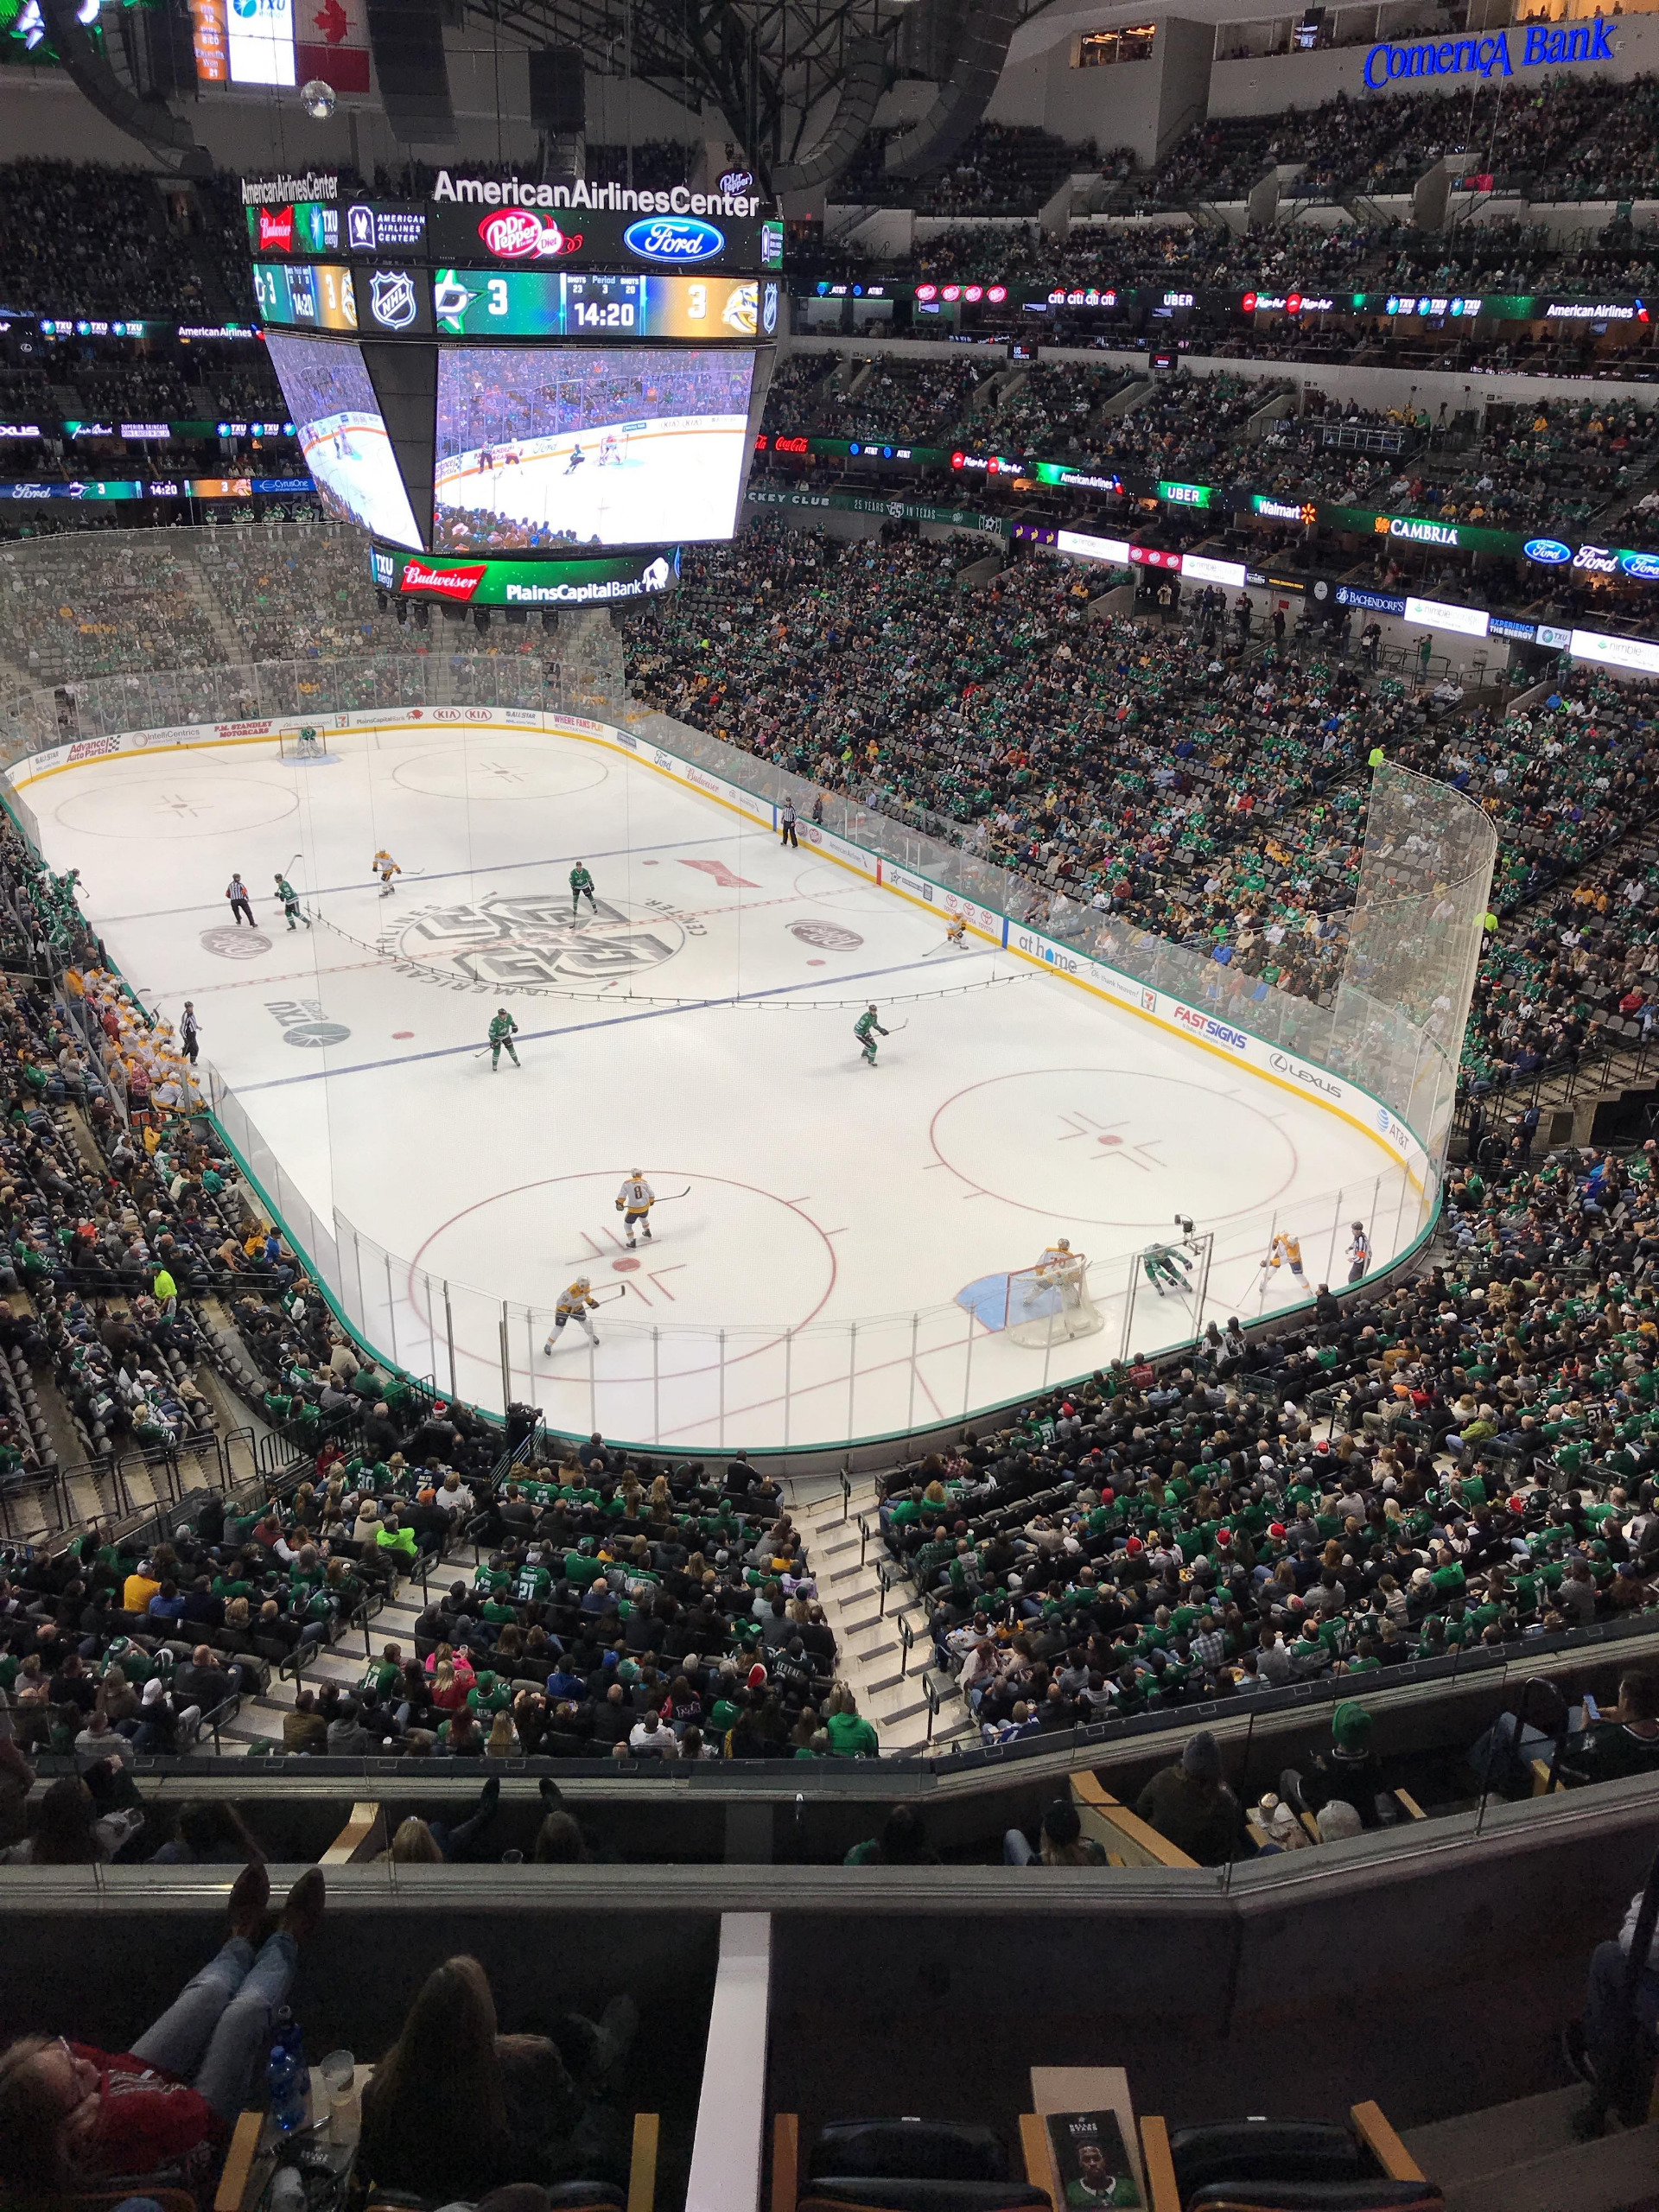 American Airlines Center Section 320 Row A Seat 13-14